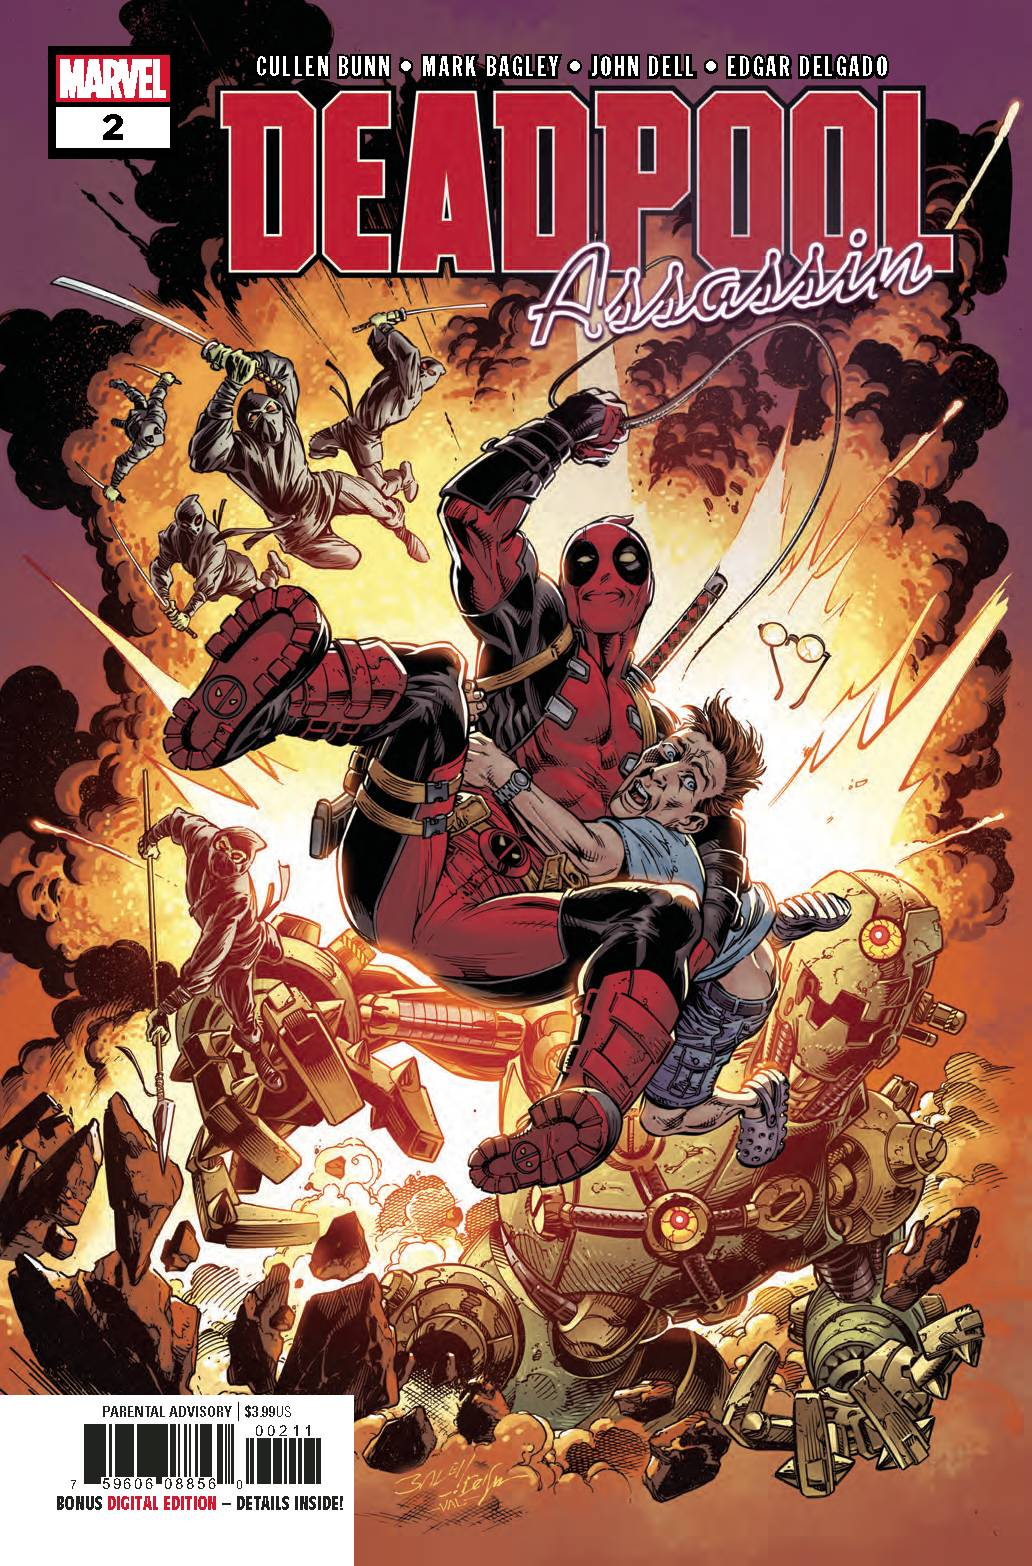 DEADPOOL ASSASSIN #2 (OF 6) (06/27/2018)